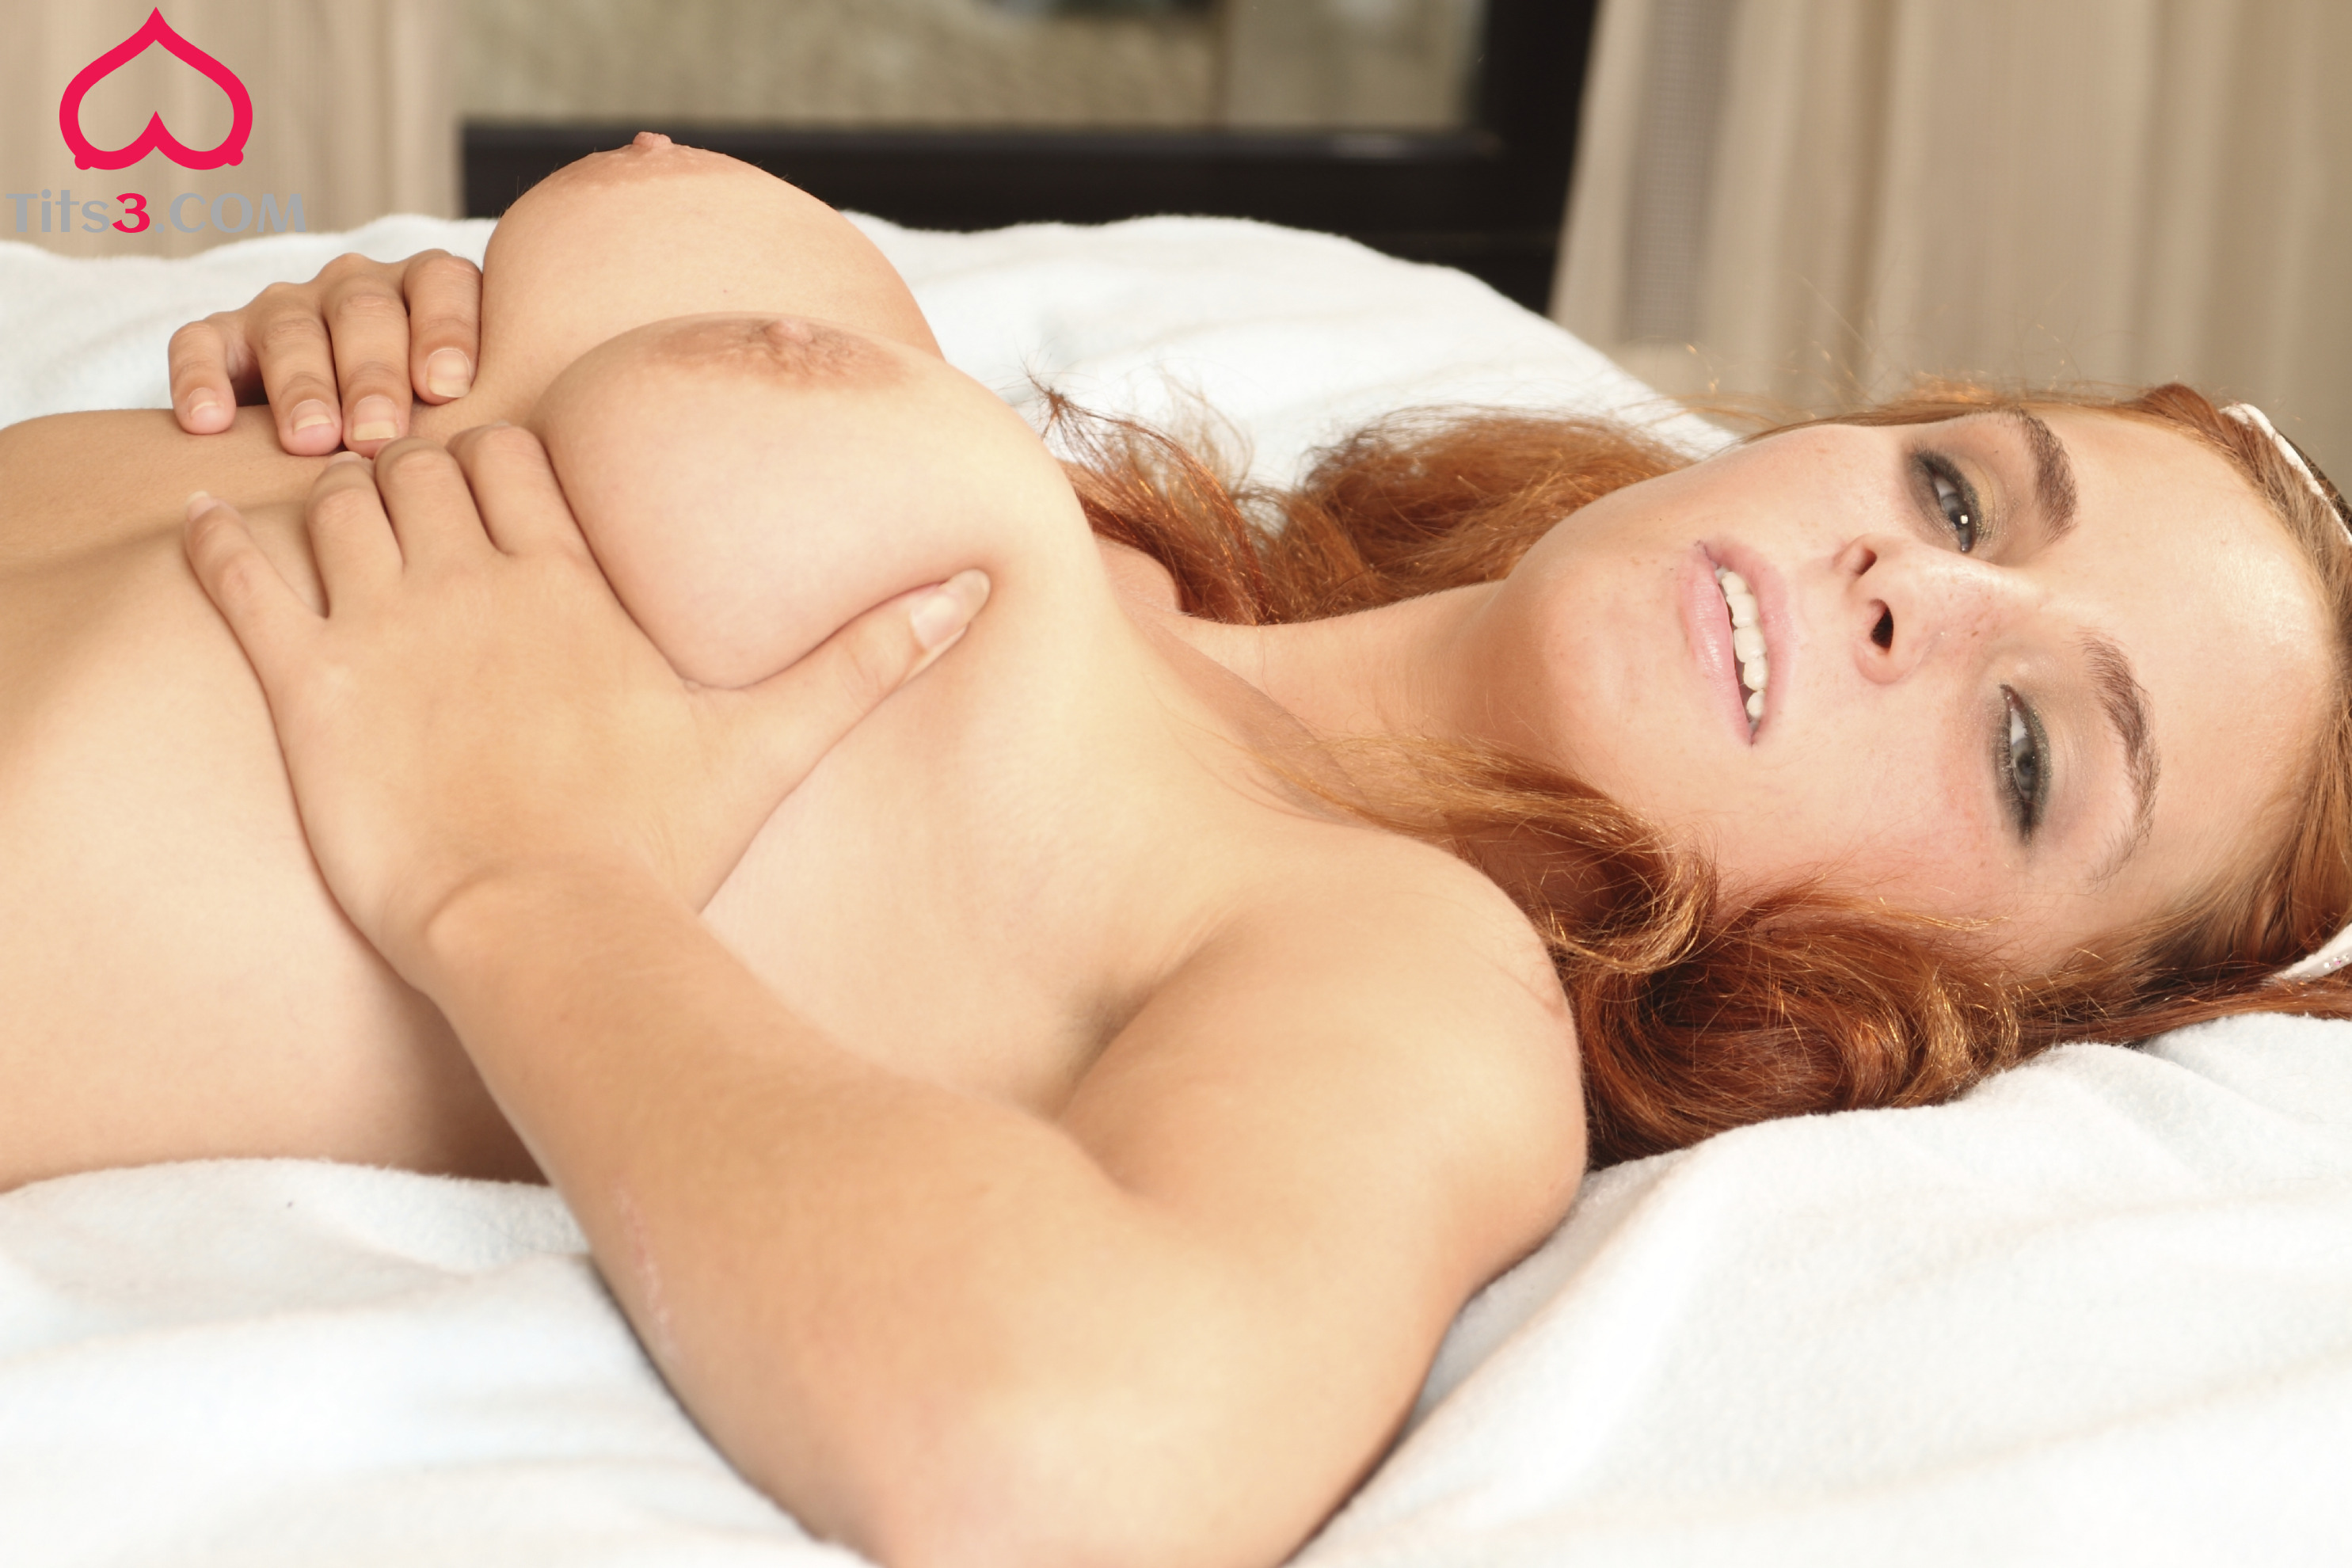 29 Ashley lies naked and squeezes her breasts